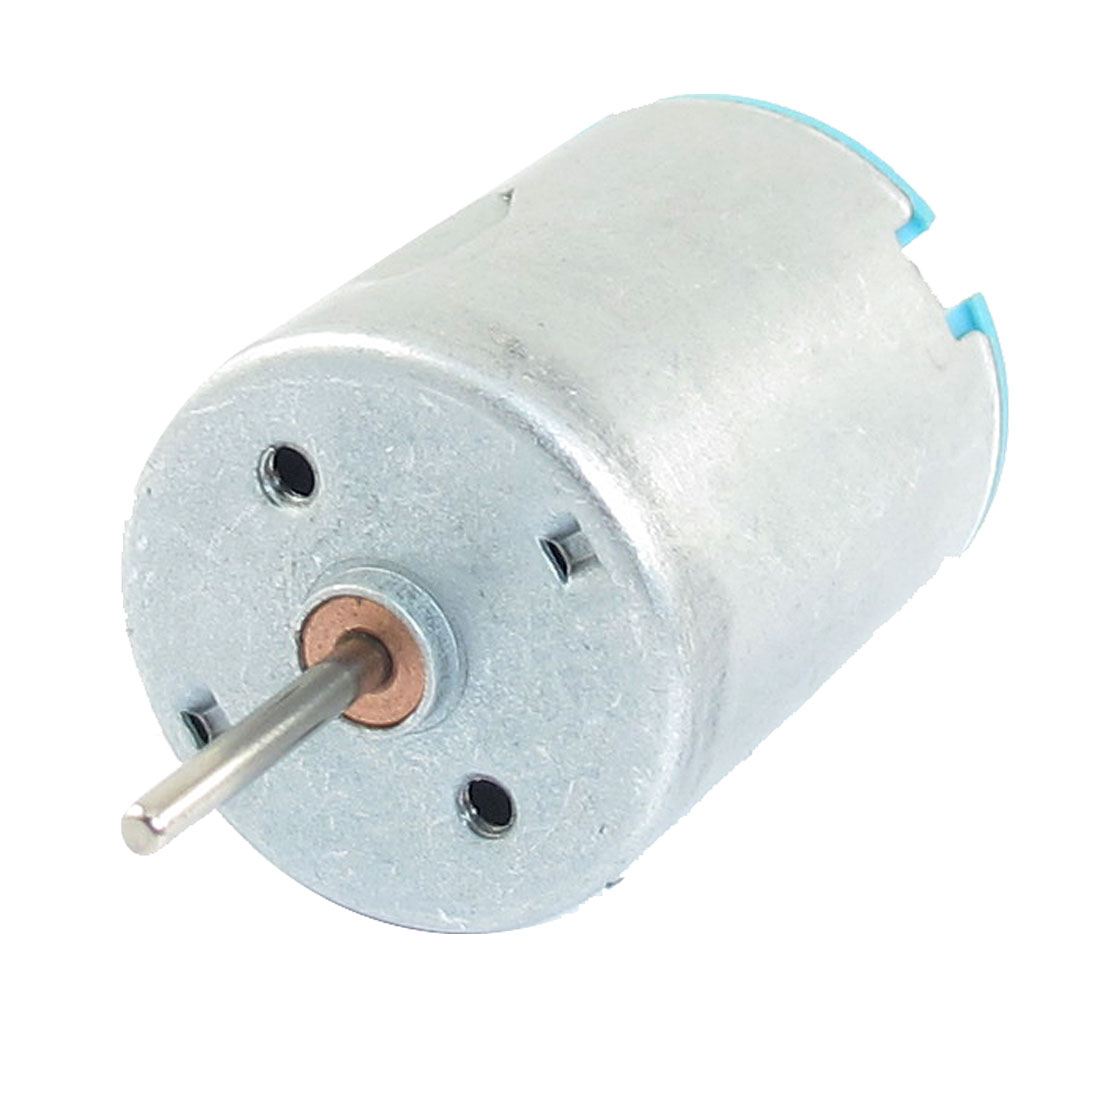 DC-24V-0-38A-6400RPM-2mm-Dia-Shaft-2-Pin-2P-Mini-Motor-Replacement-Parts